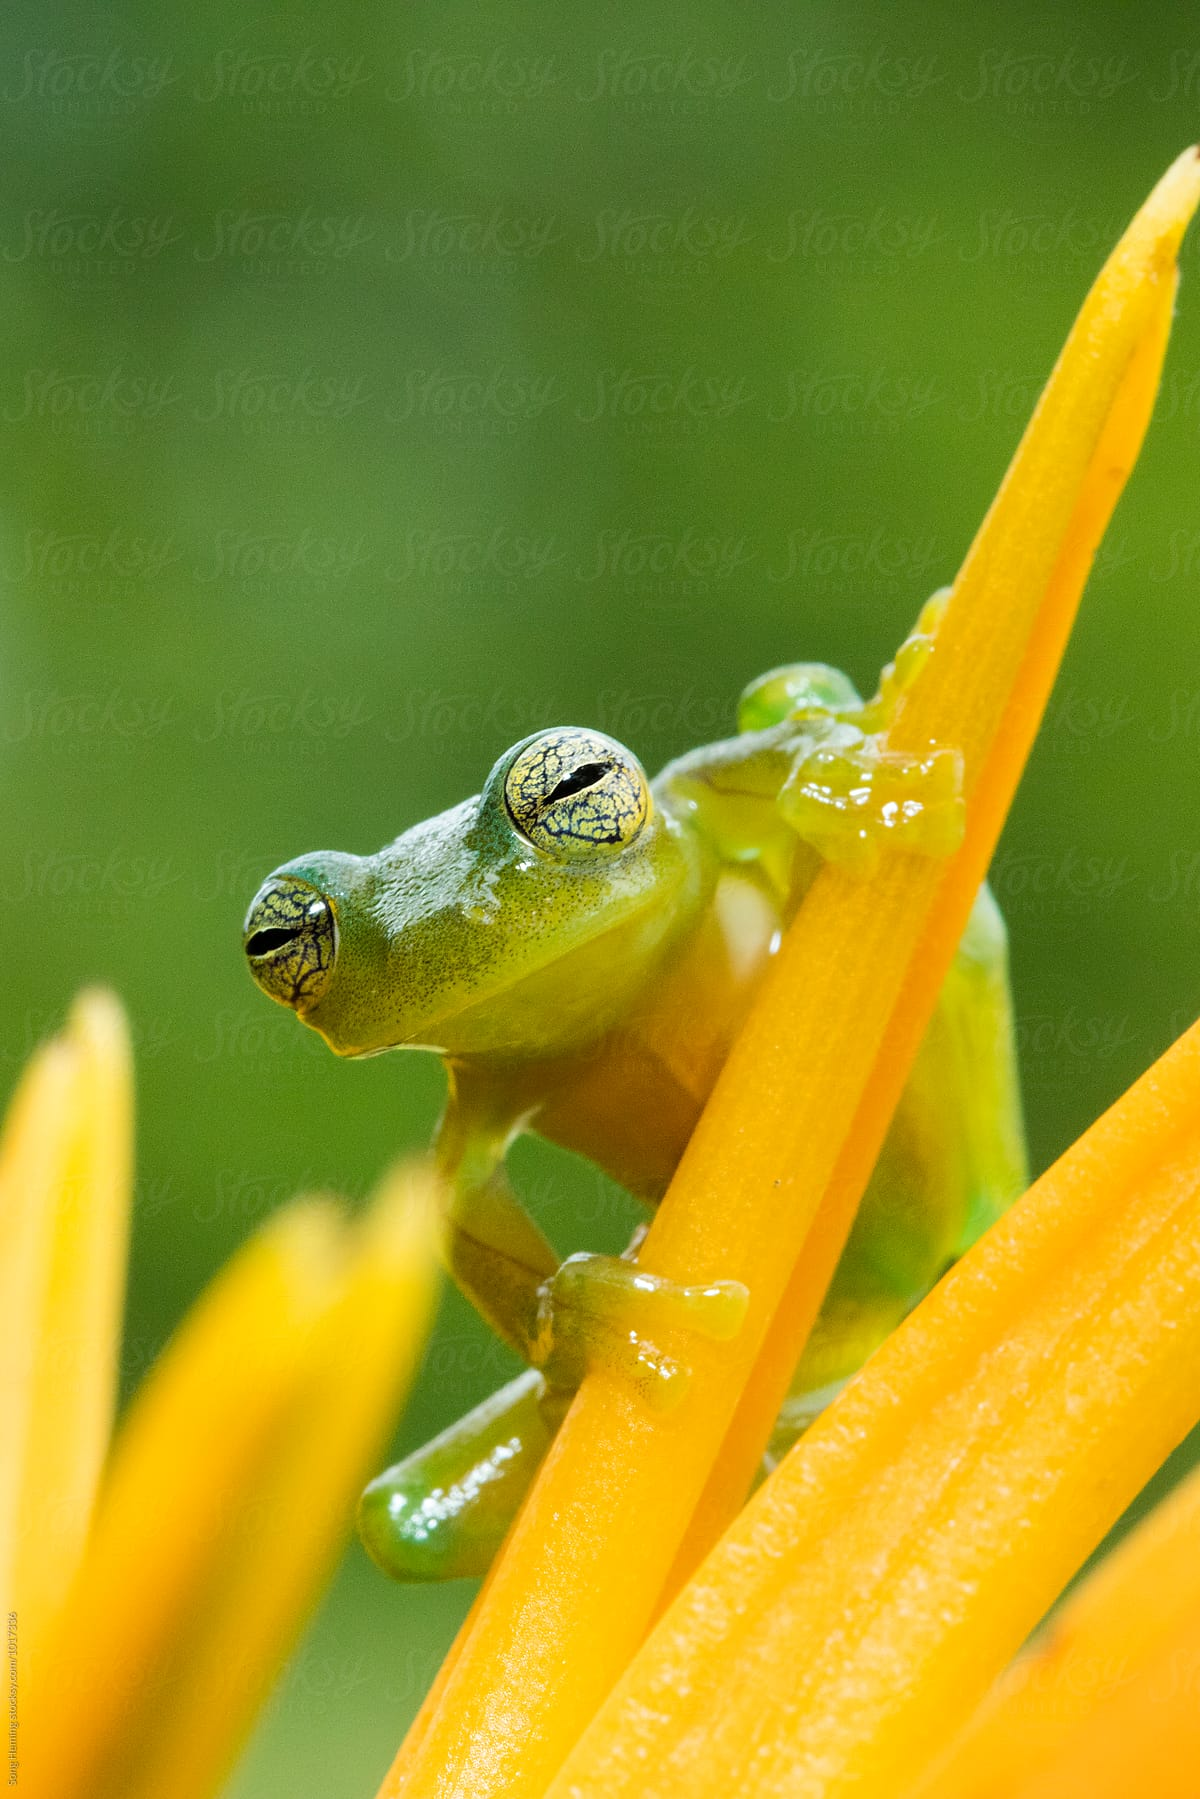 Portrait of tree frog standing on the yellow flower stocksy united portrait of tree frog standing on the yellow flower by song heming for stocksy united mightylinksfo